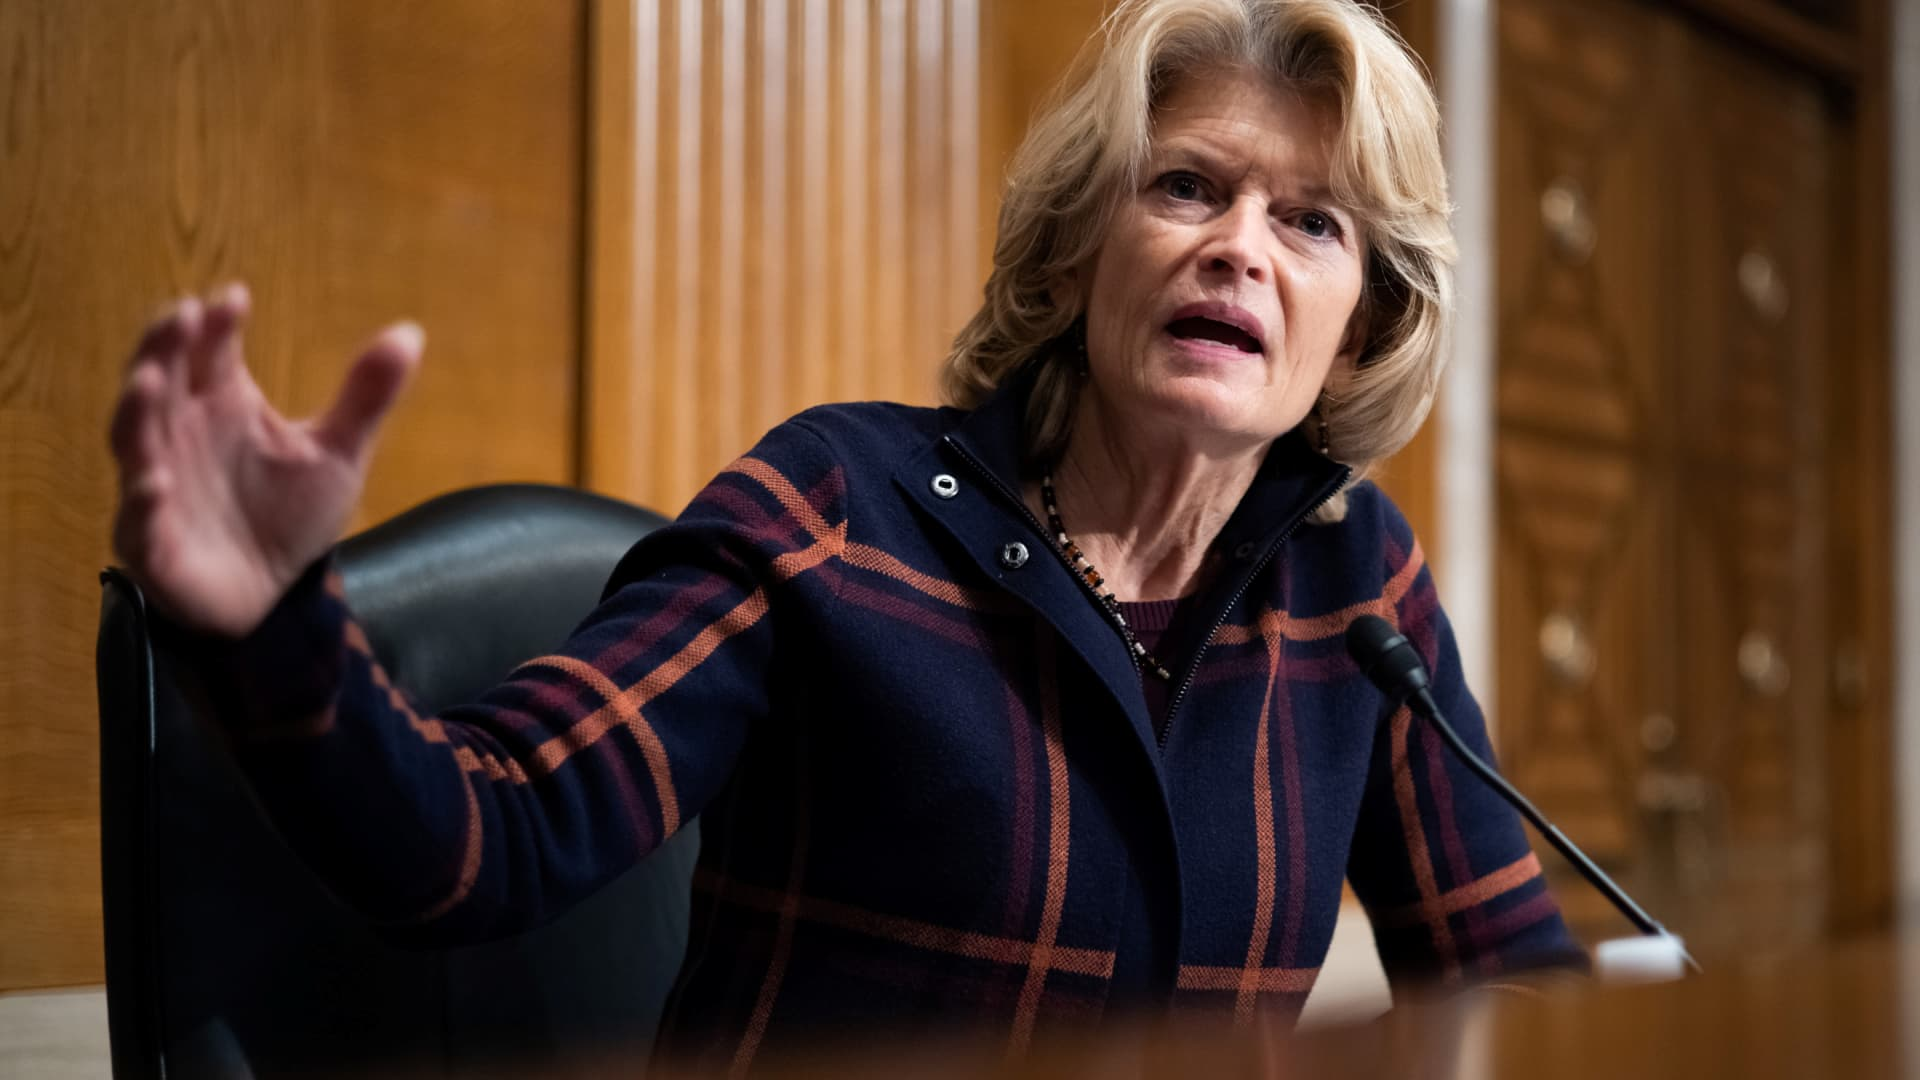 Senator Lisa Murkowski, R-AK, speaks during a Senate Health, Education, Labor and Pensions Committee nomination hearing for Marty Walsh to be labor secretary, on Capitol Hill in Washington, DC, February 4, 2021.